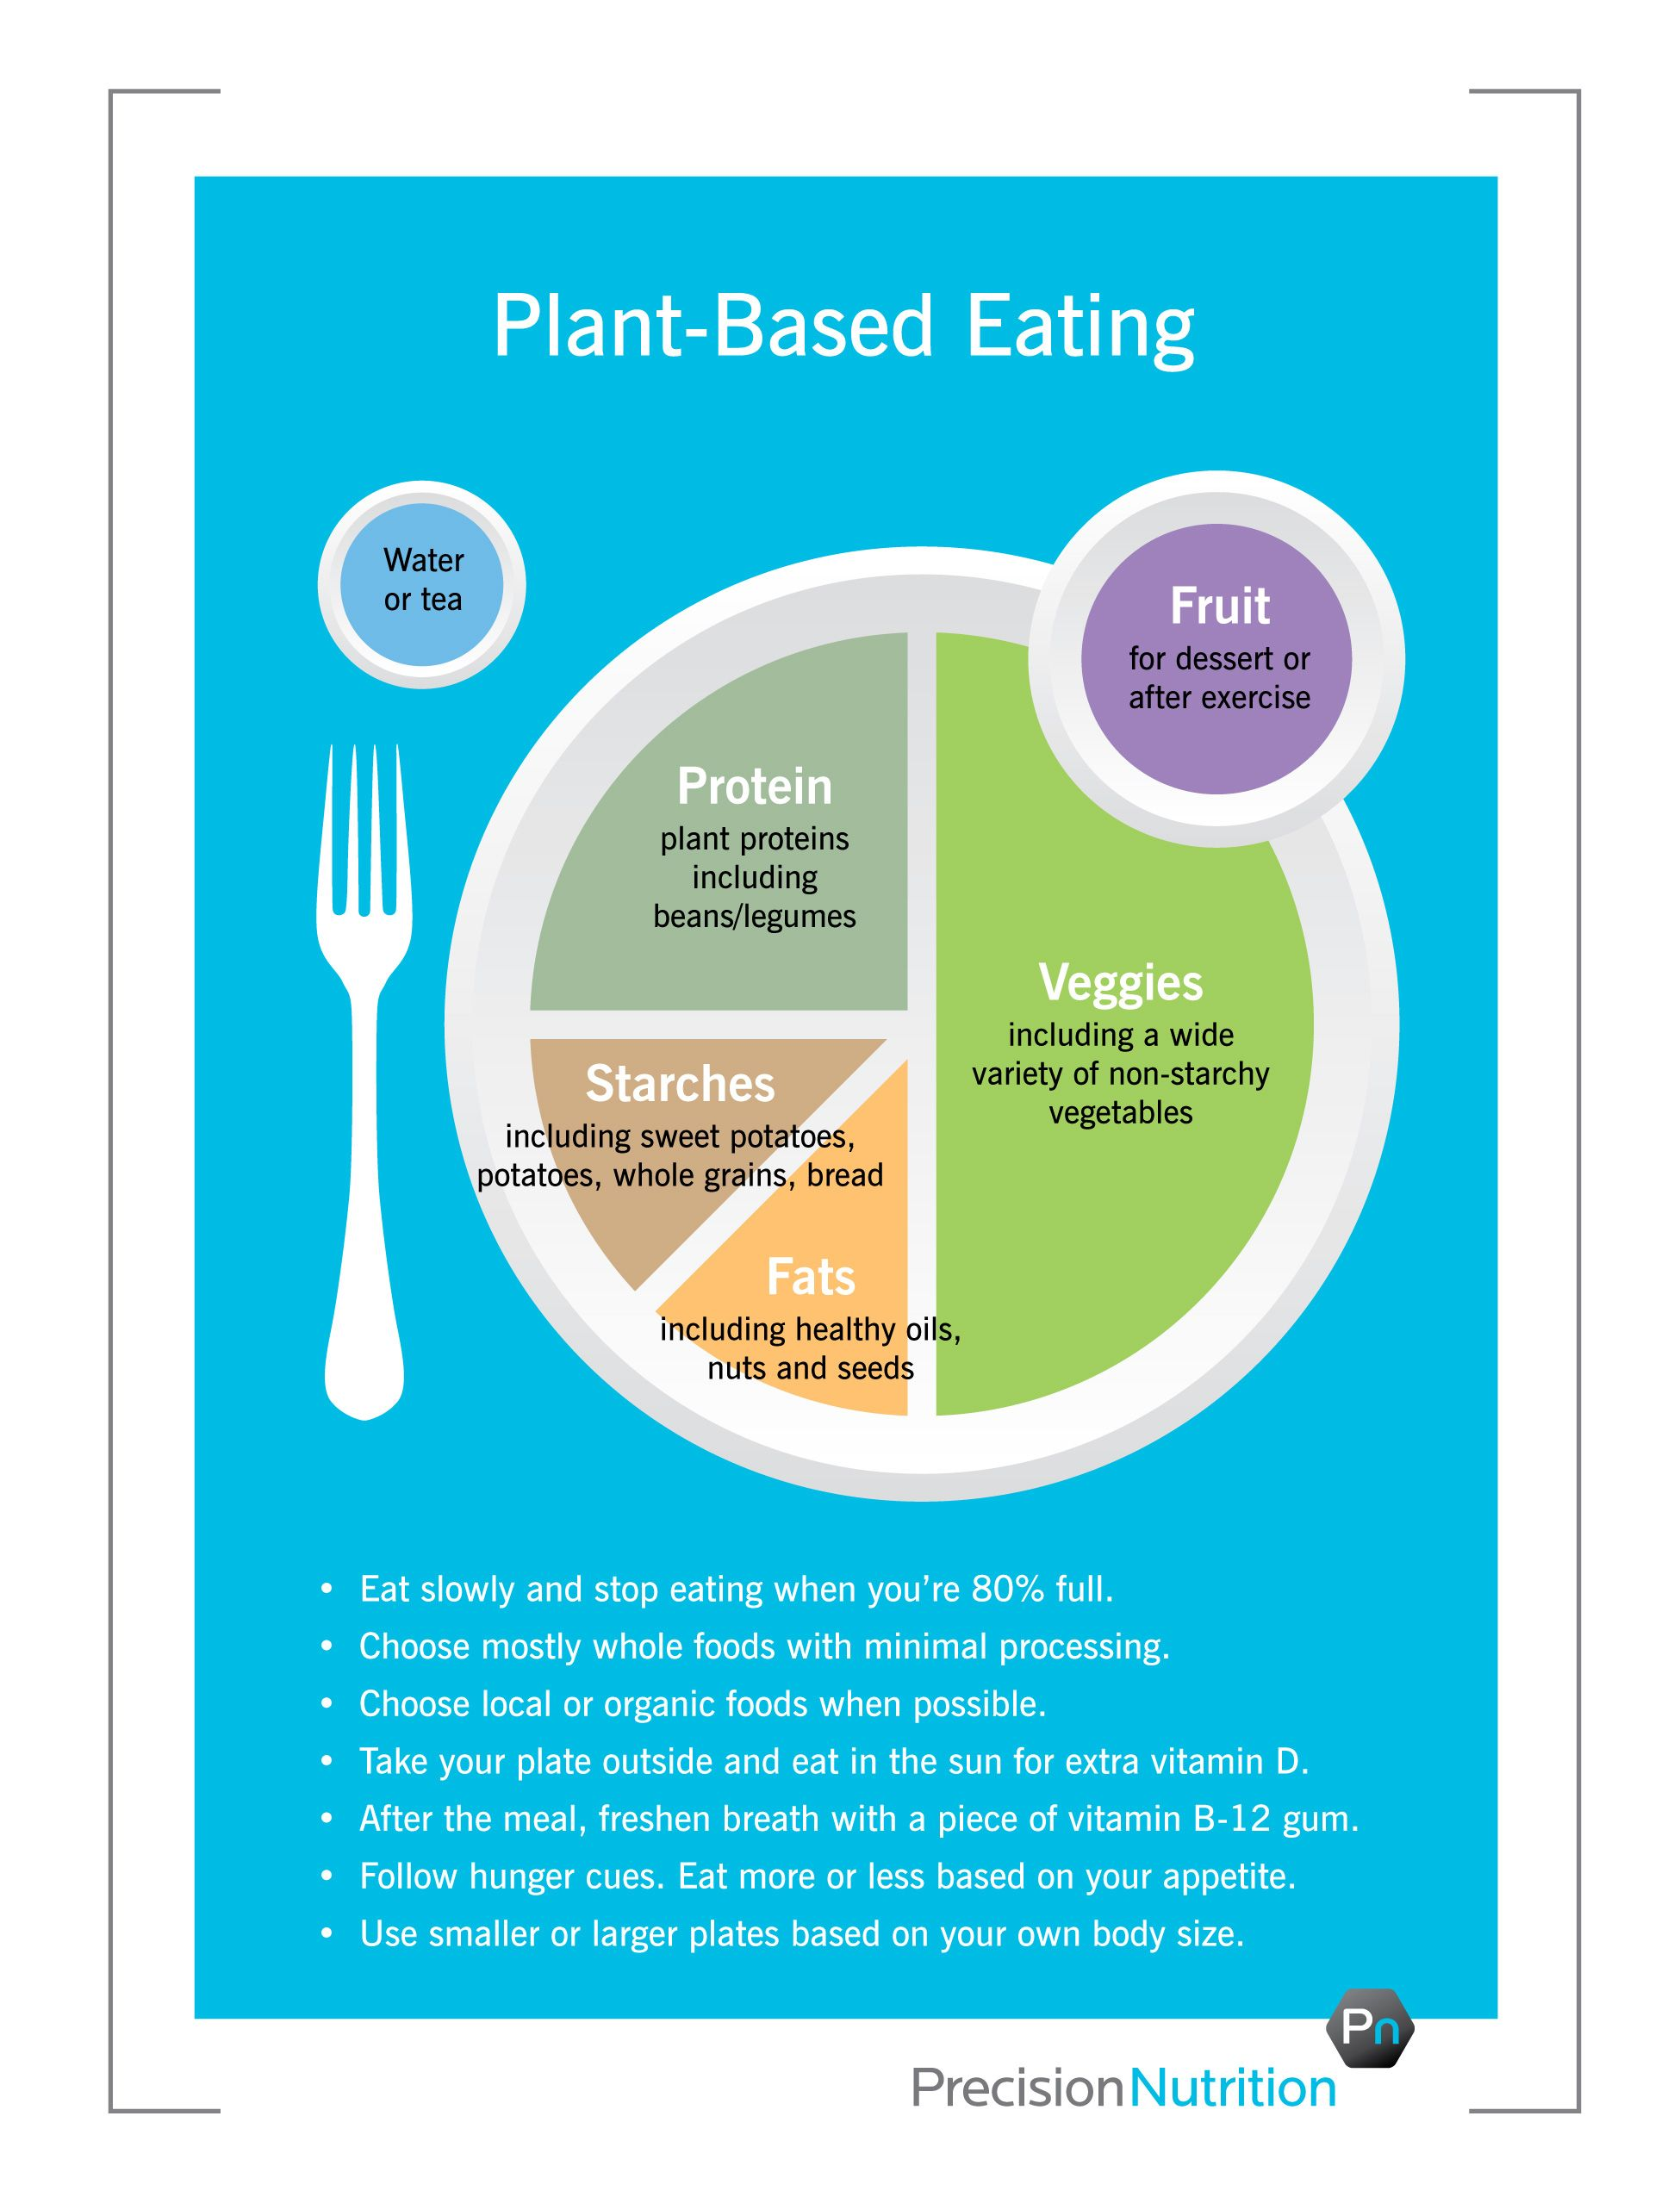 Plantbased eating guidelines by Precision Nutrition